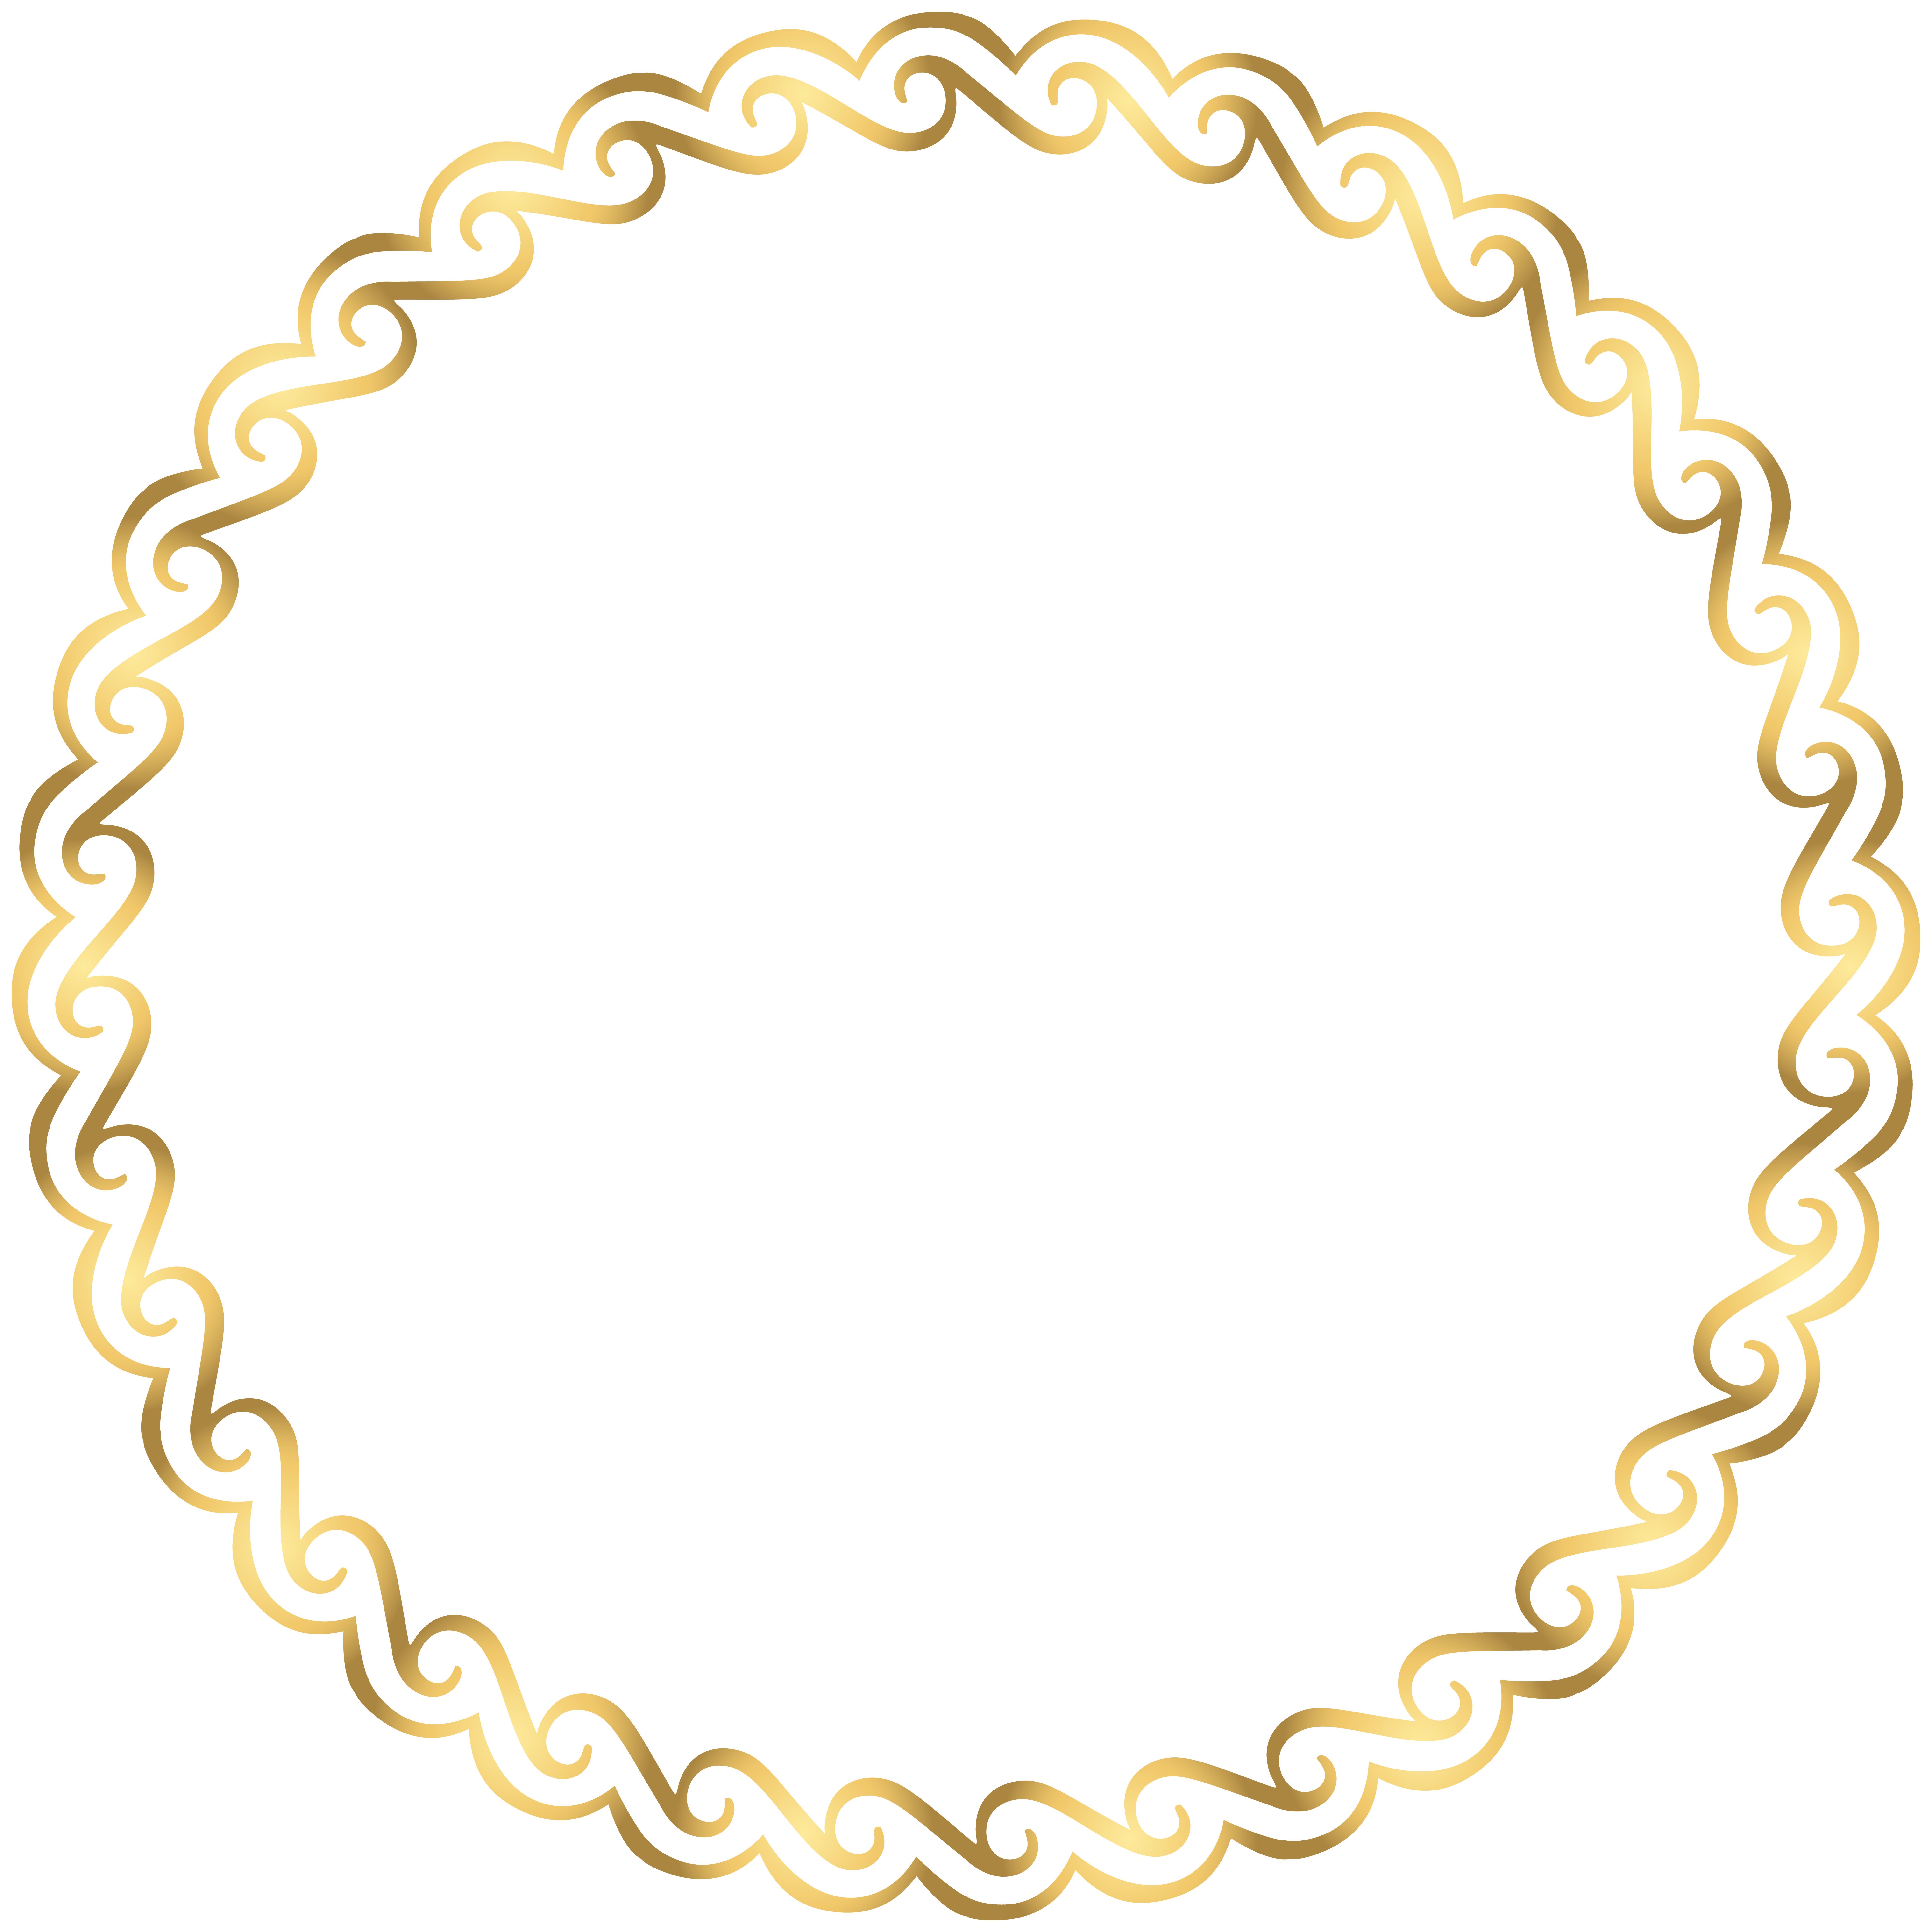 Deco clipart round. Border frame png clip